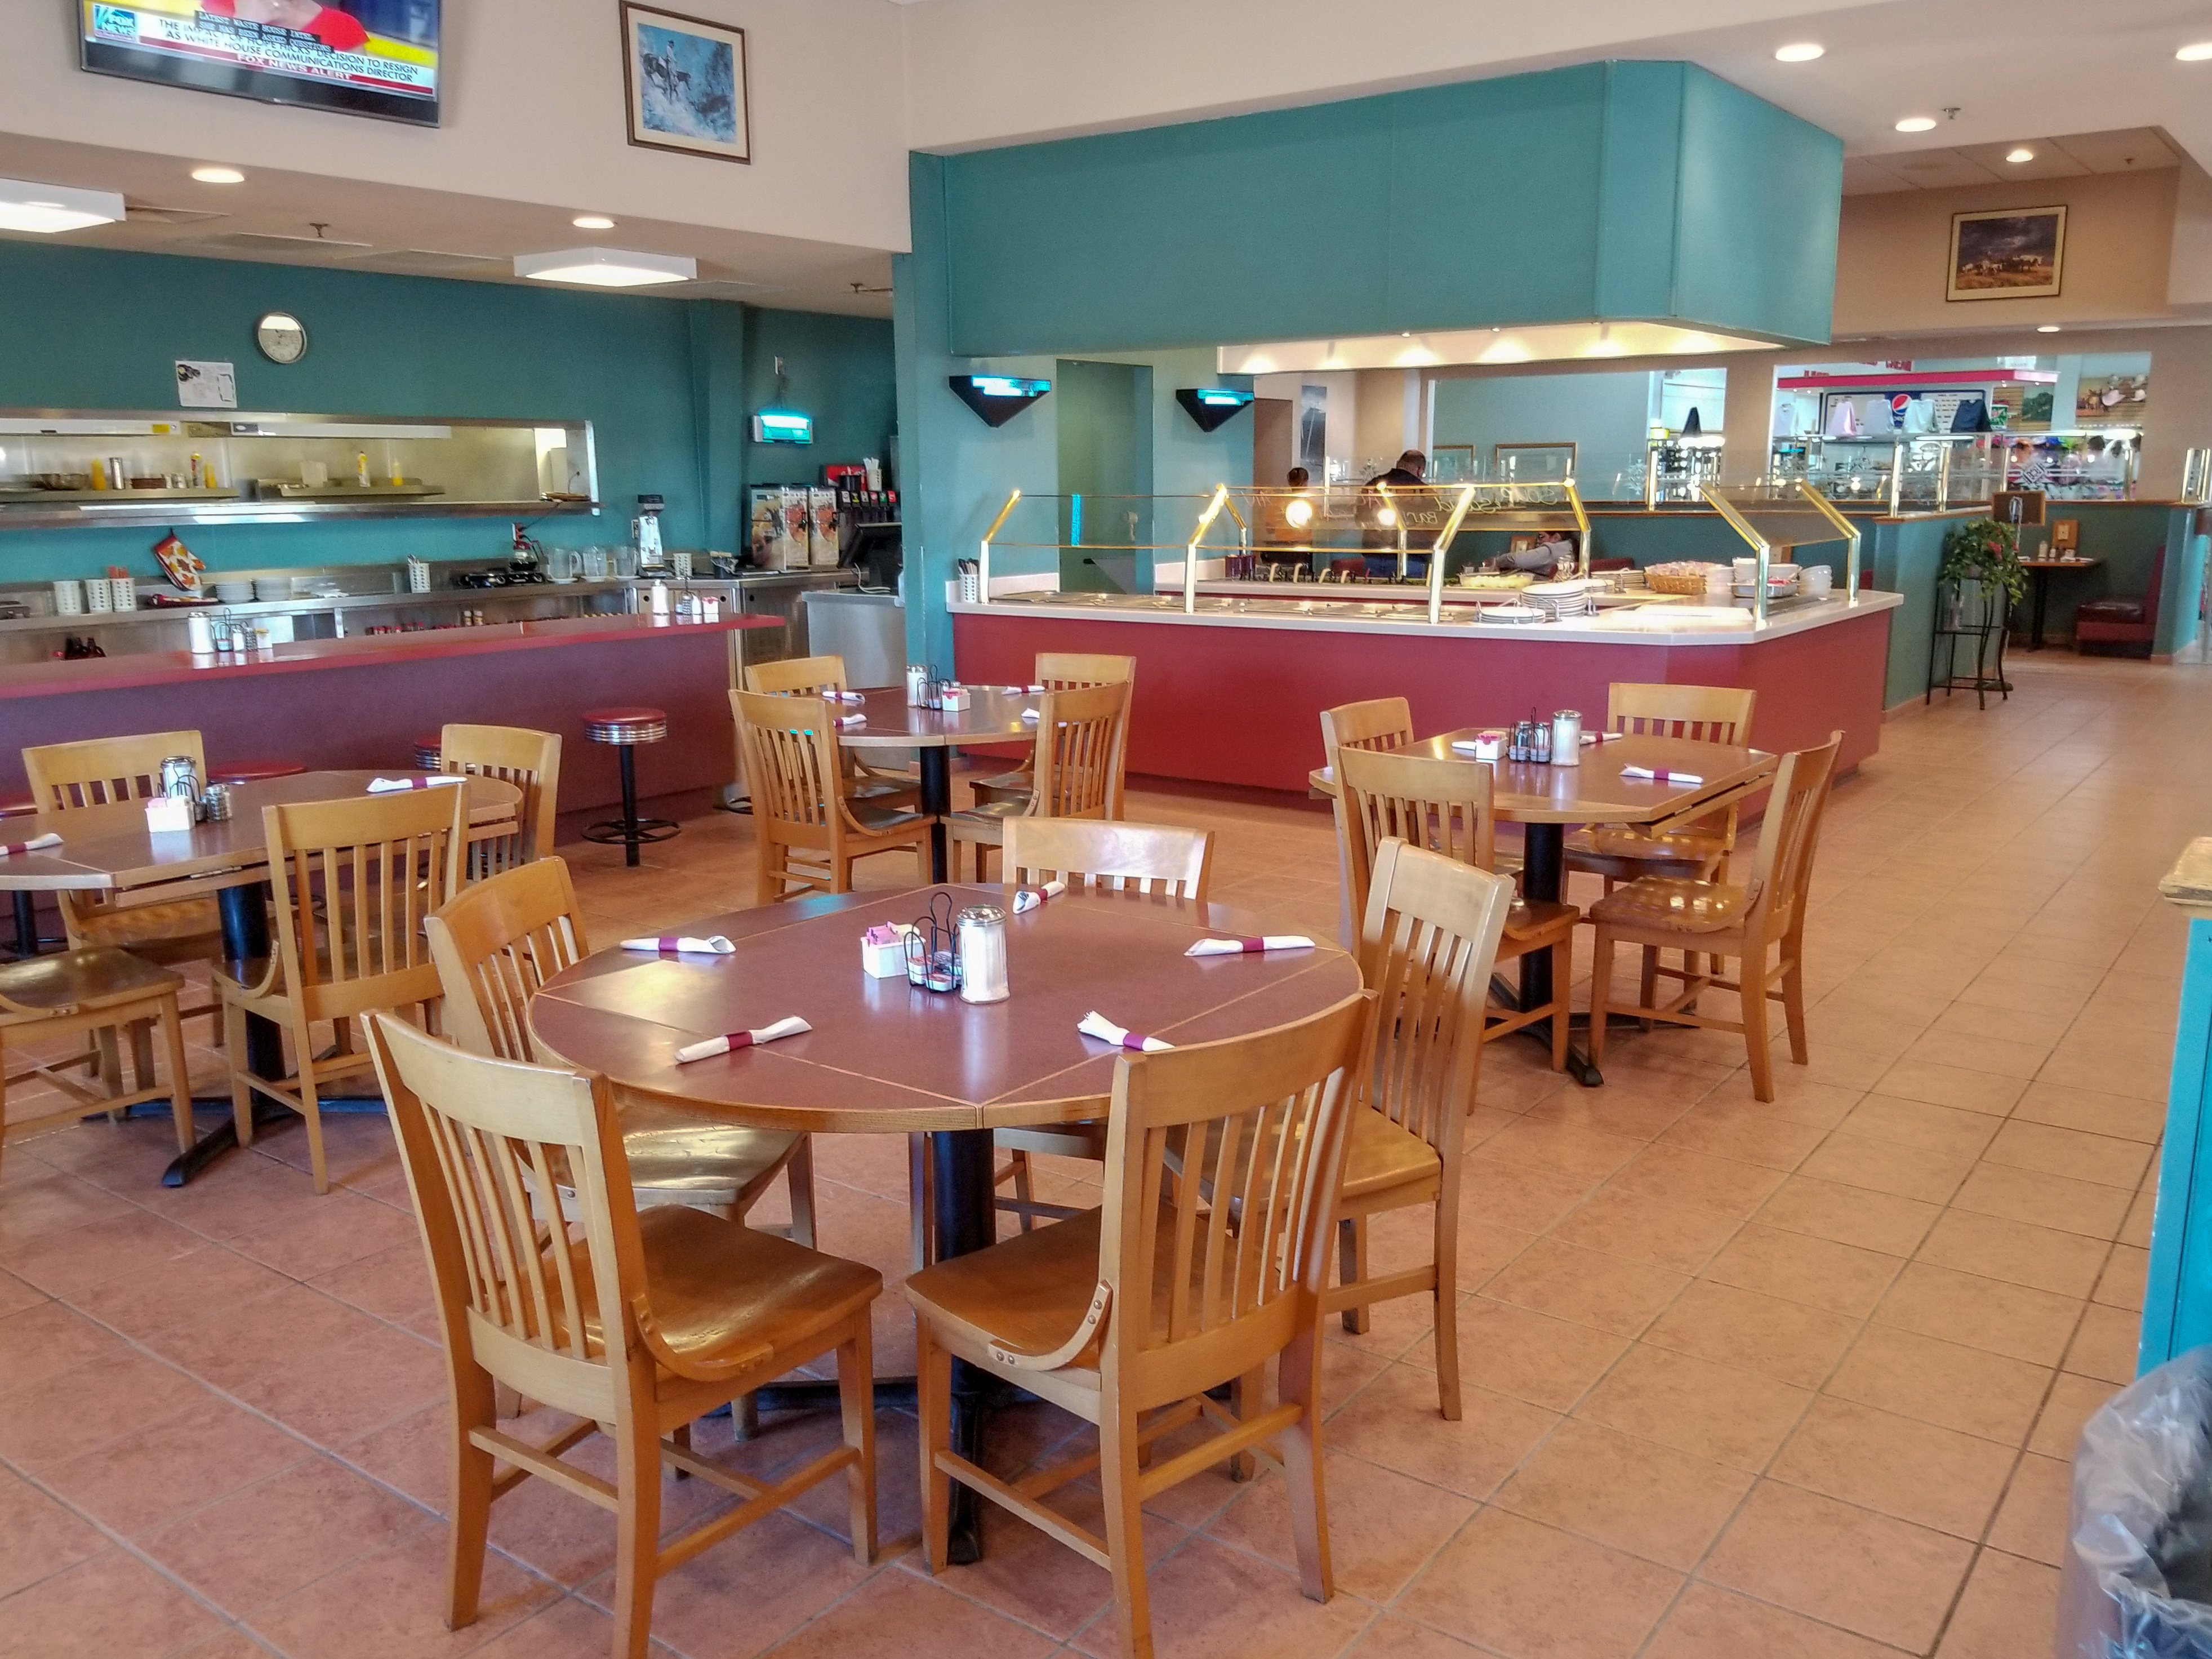 Spacious Dining at Bonnie's Kitchen